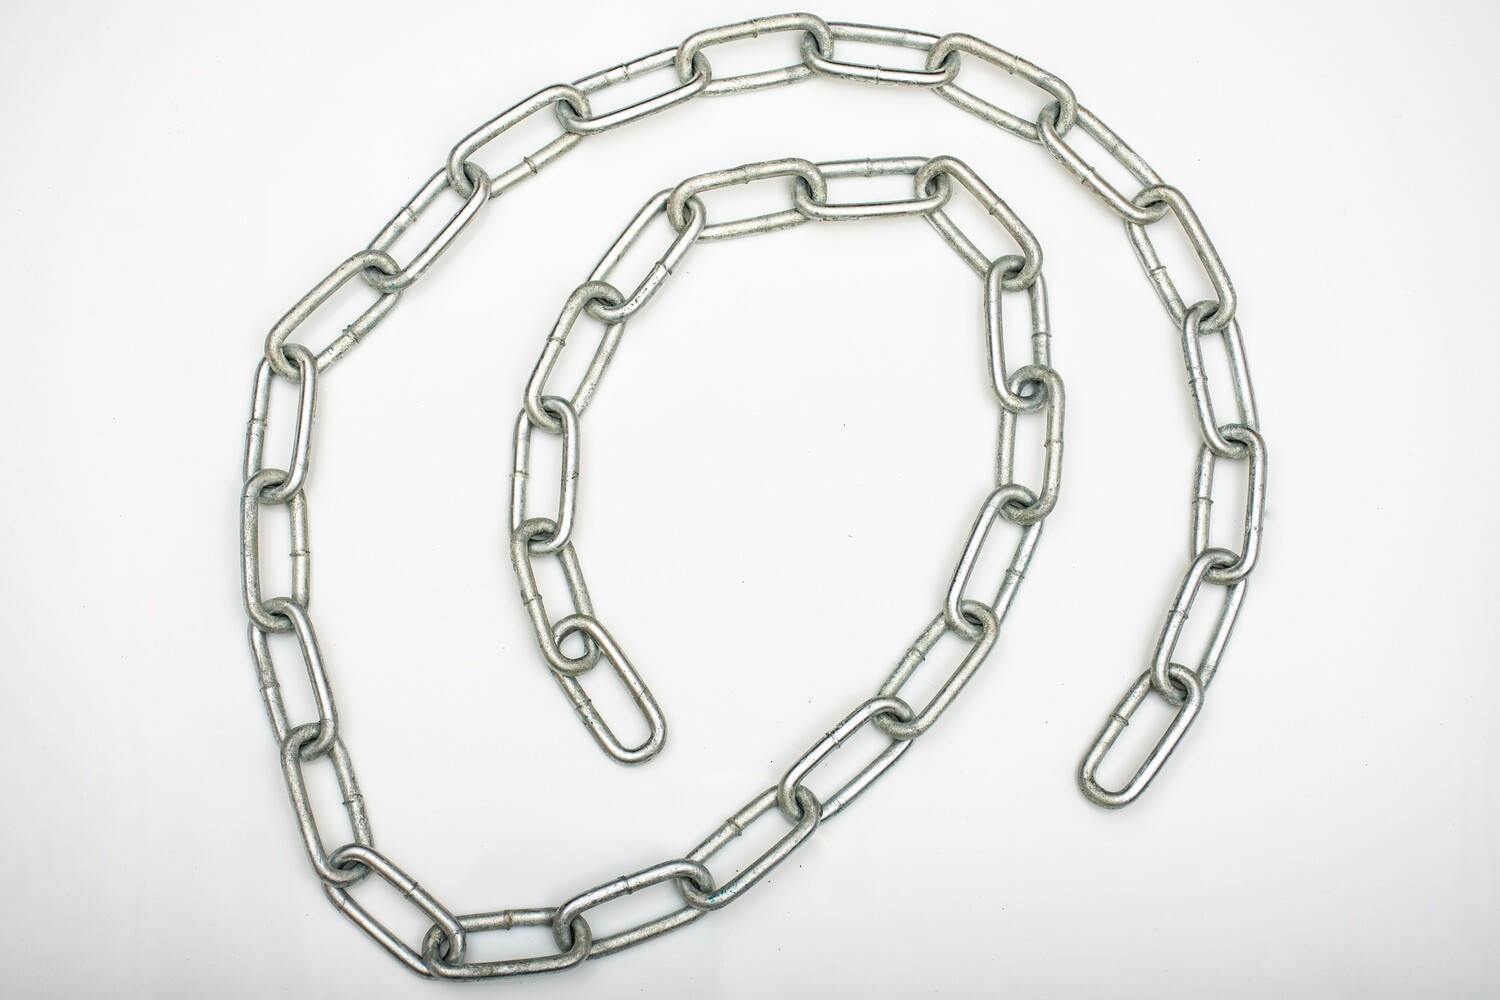 Replacement Support Chain 2 metres